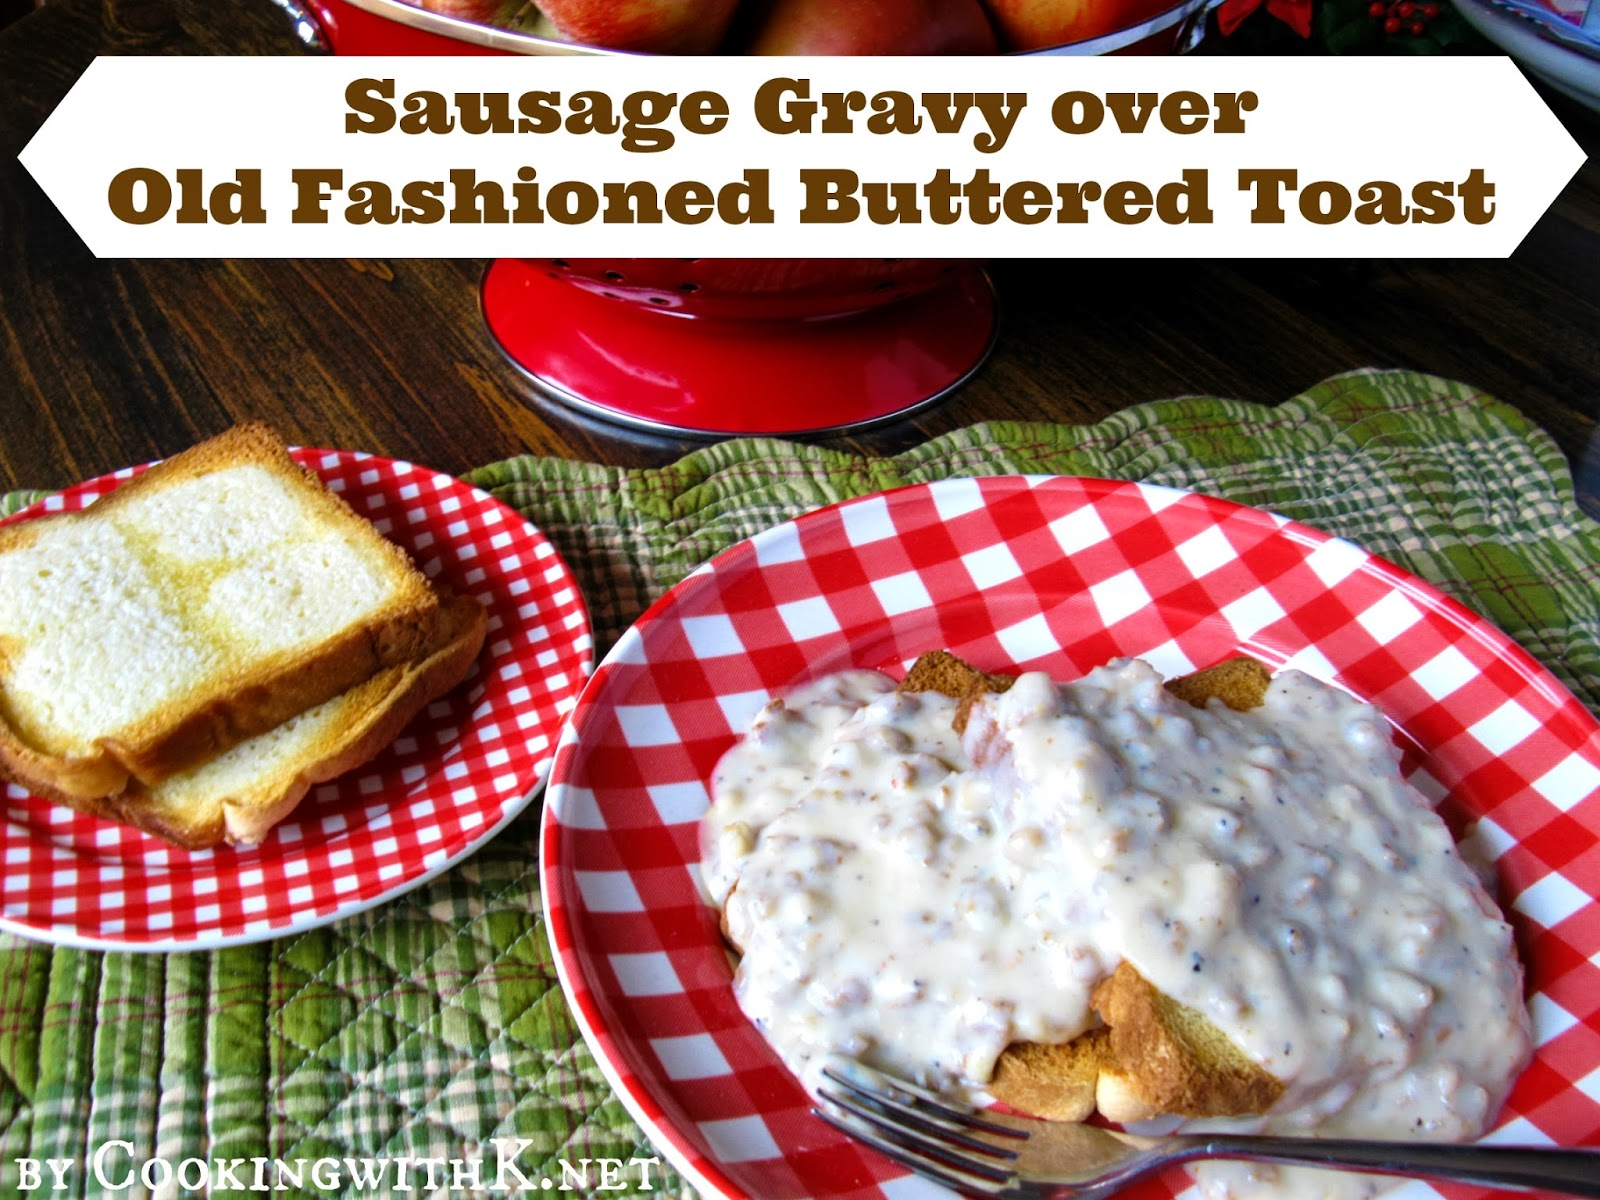 Sausage Gravy over Old Fashioned Buttered Toast